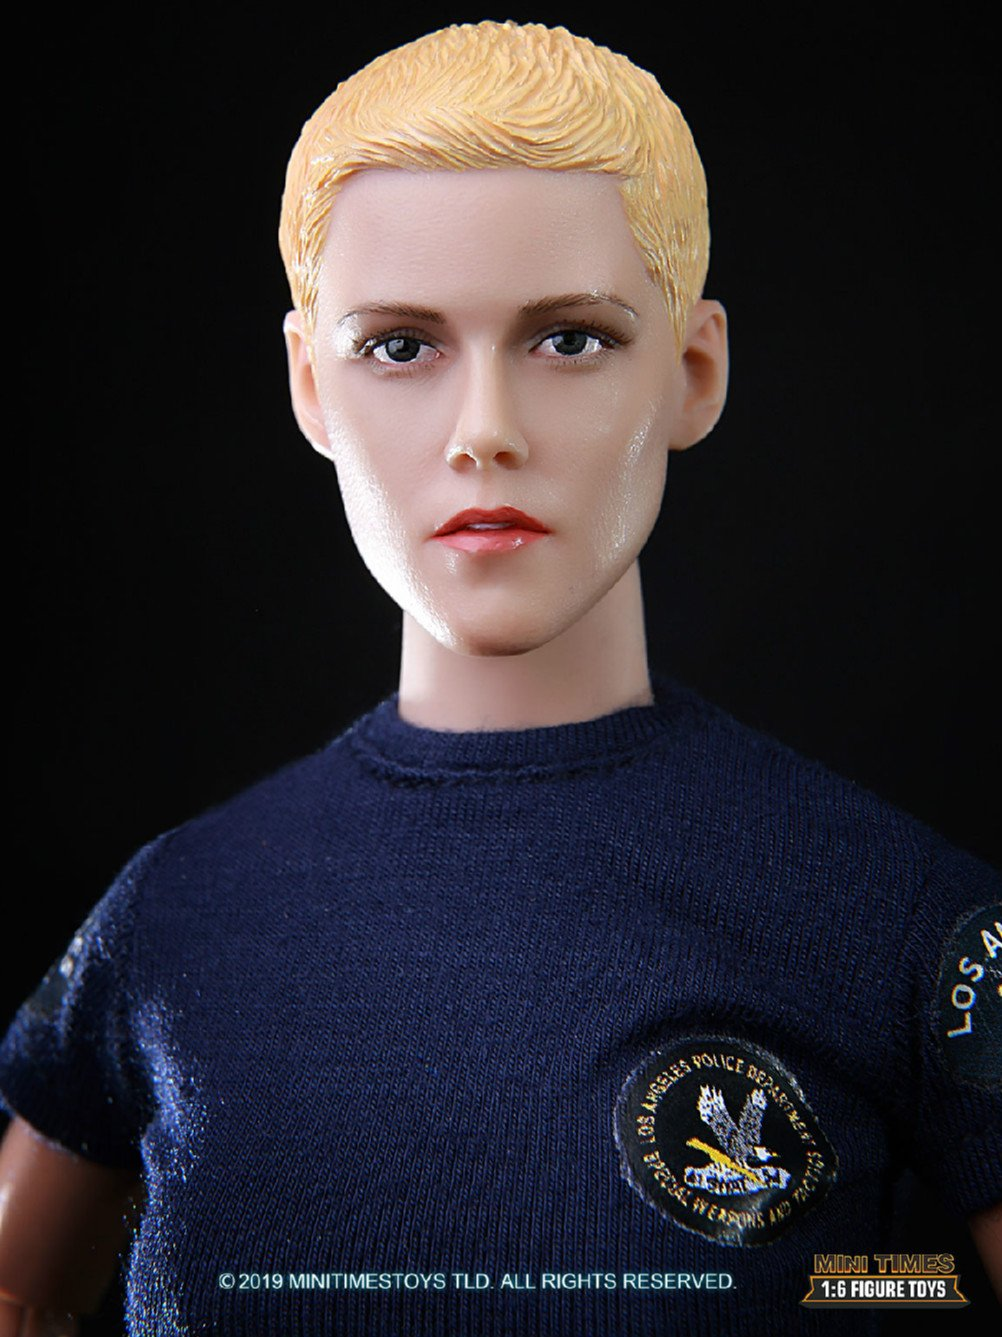 minitimes - NEW PRODUCT: mini times toys M016 1/6 Scale Female S.W.A.T. Military 12in Figure 8177